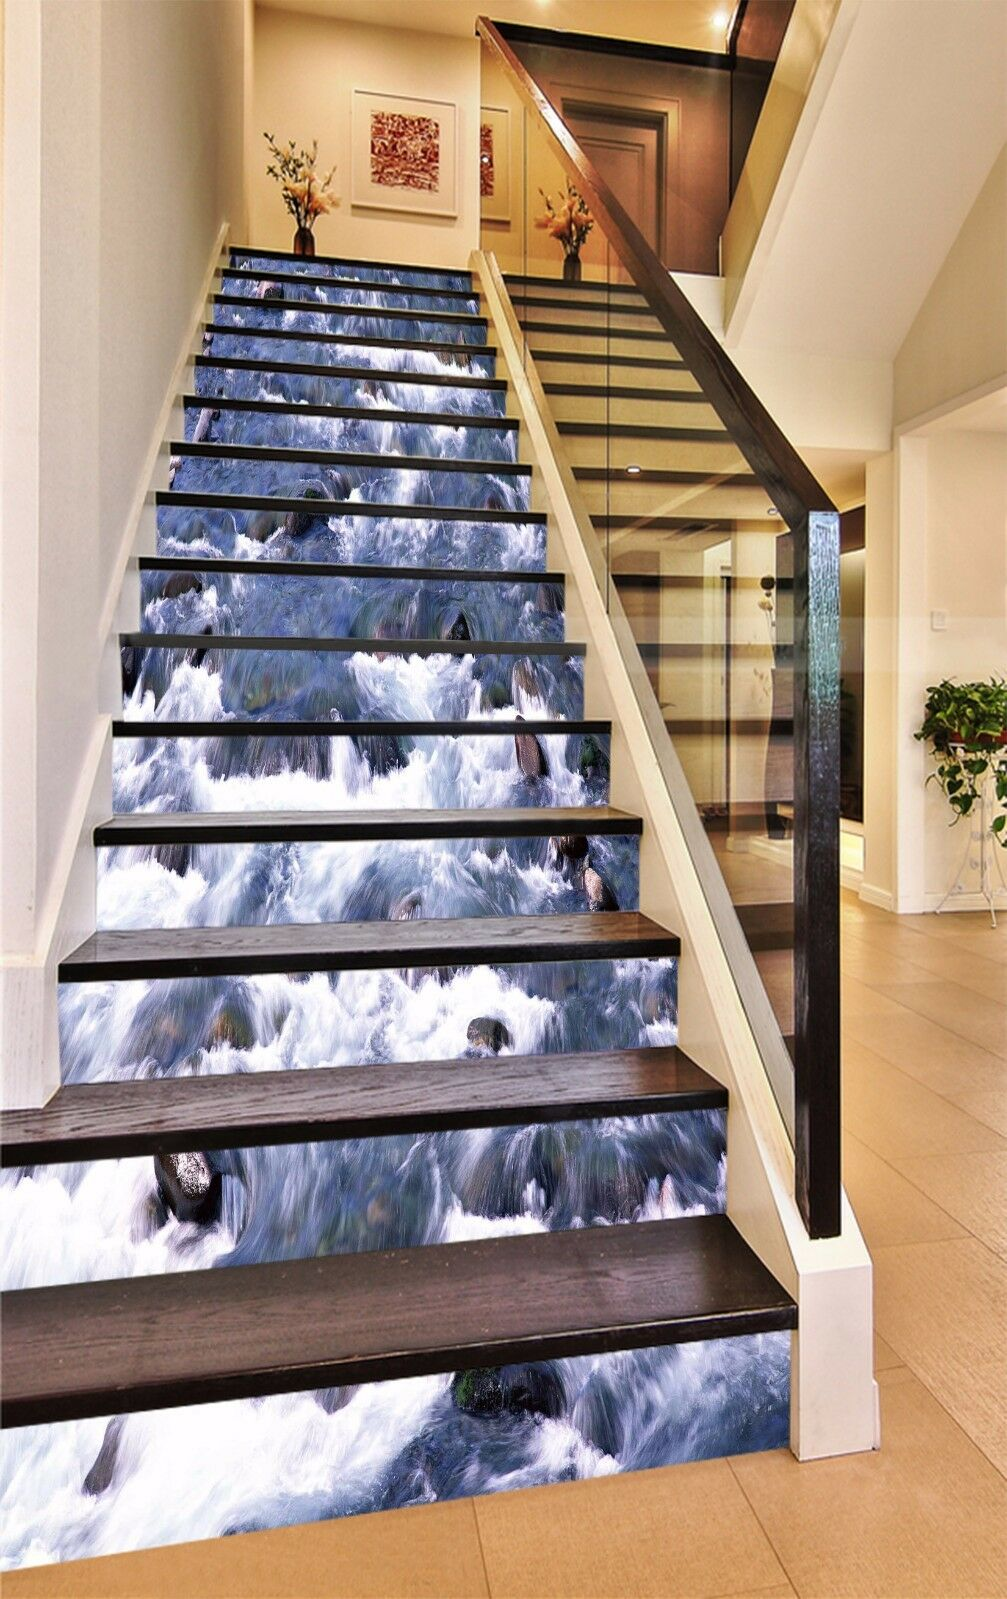 3D Stream Stone 878 Stair Risers Decoration Photo Mural Vinyl Decal Wallpaper AU